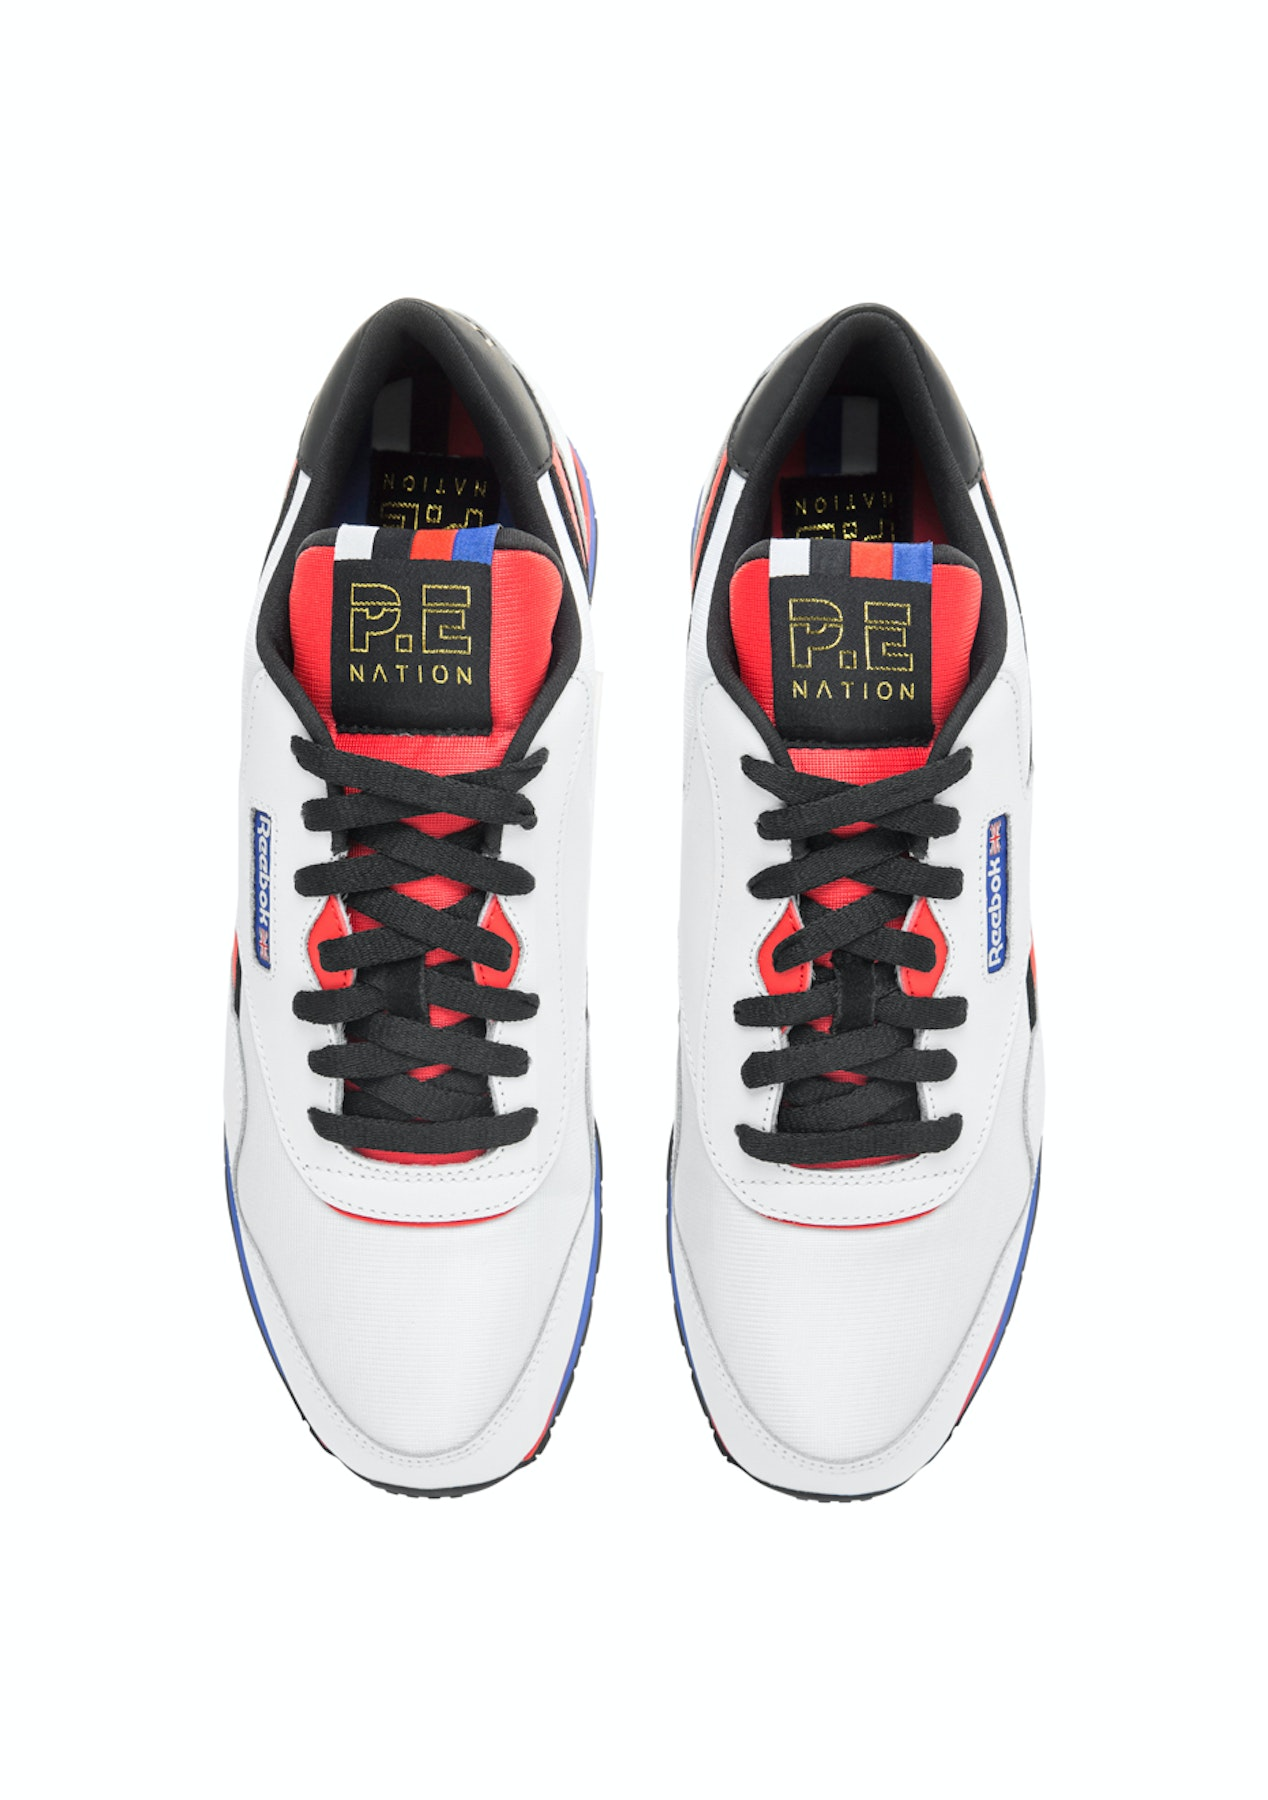 845786efd2322f Reebok x PE Nation Classic Nylon Trainer - White - The Big Activewear Sale  - Onceit